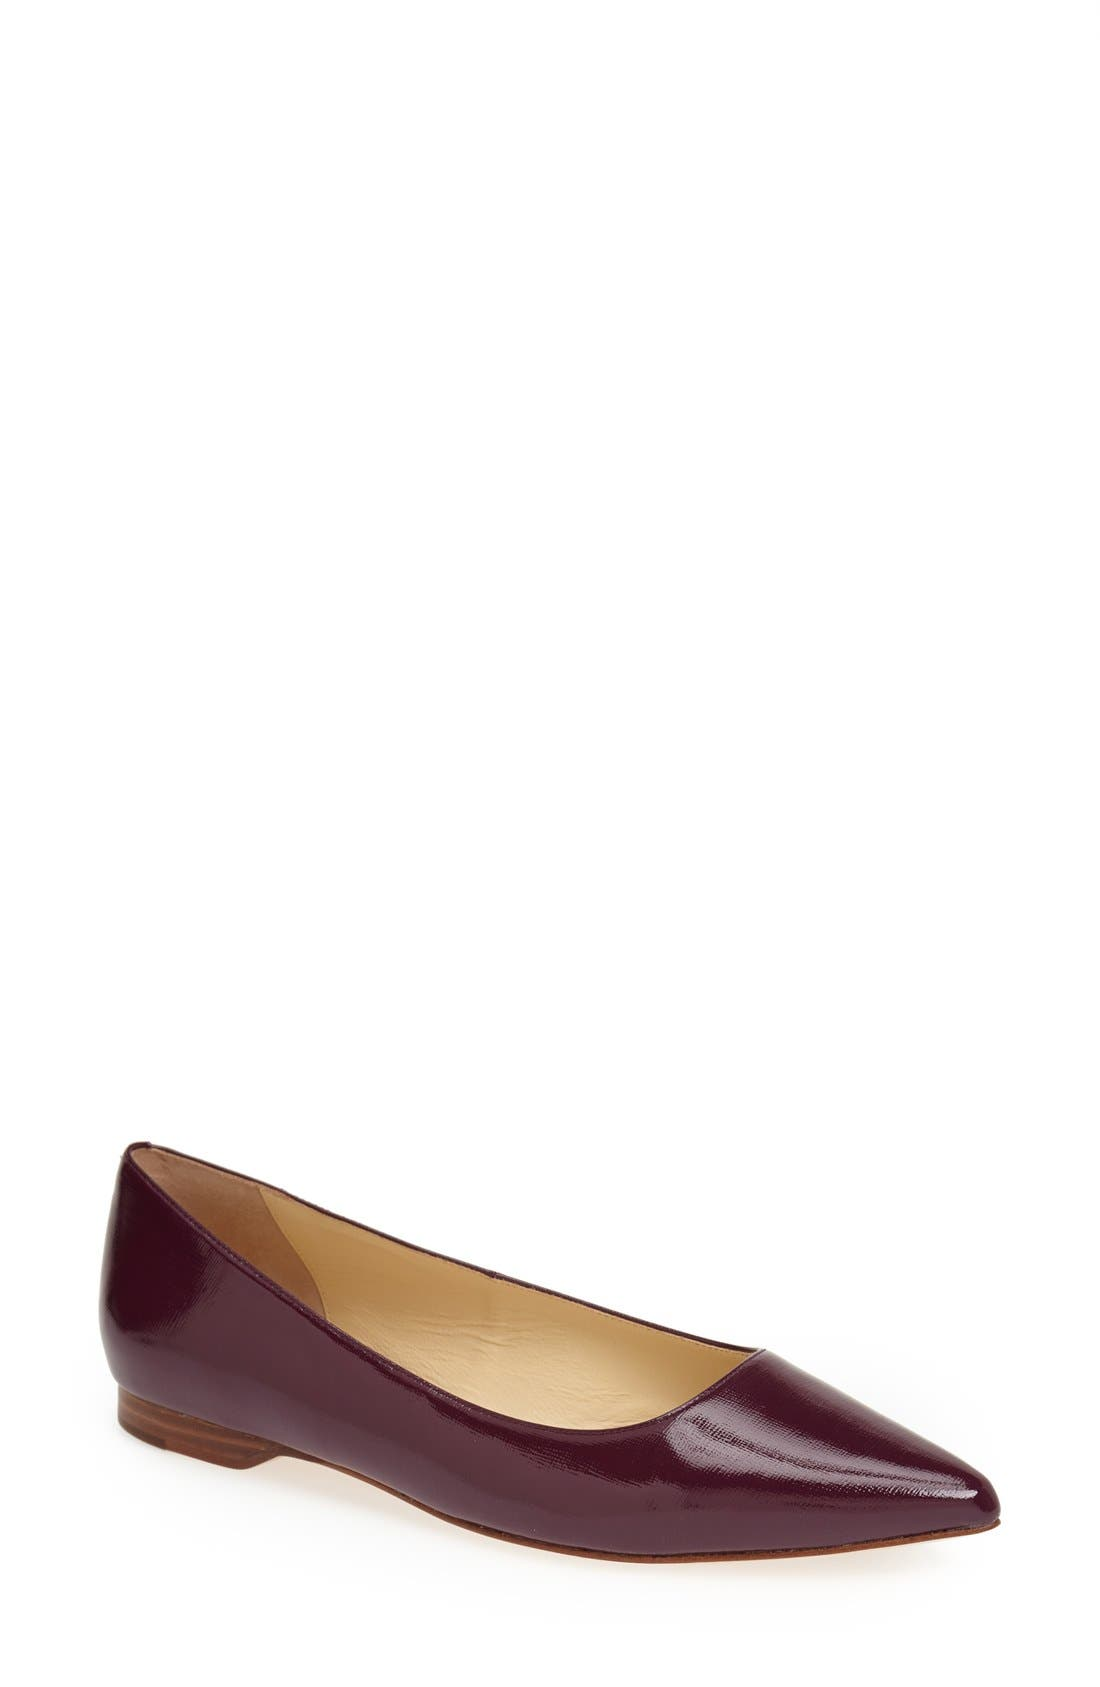 Alternate Image 1 Selected - Cole Haan 'Magnolia' Skimmer Flat (Women)